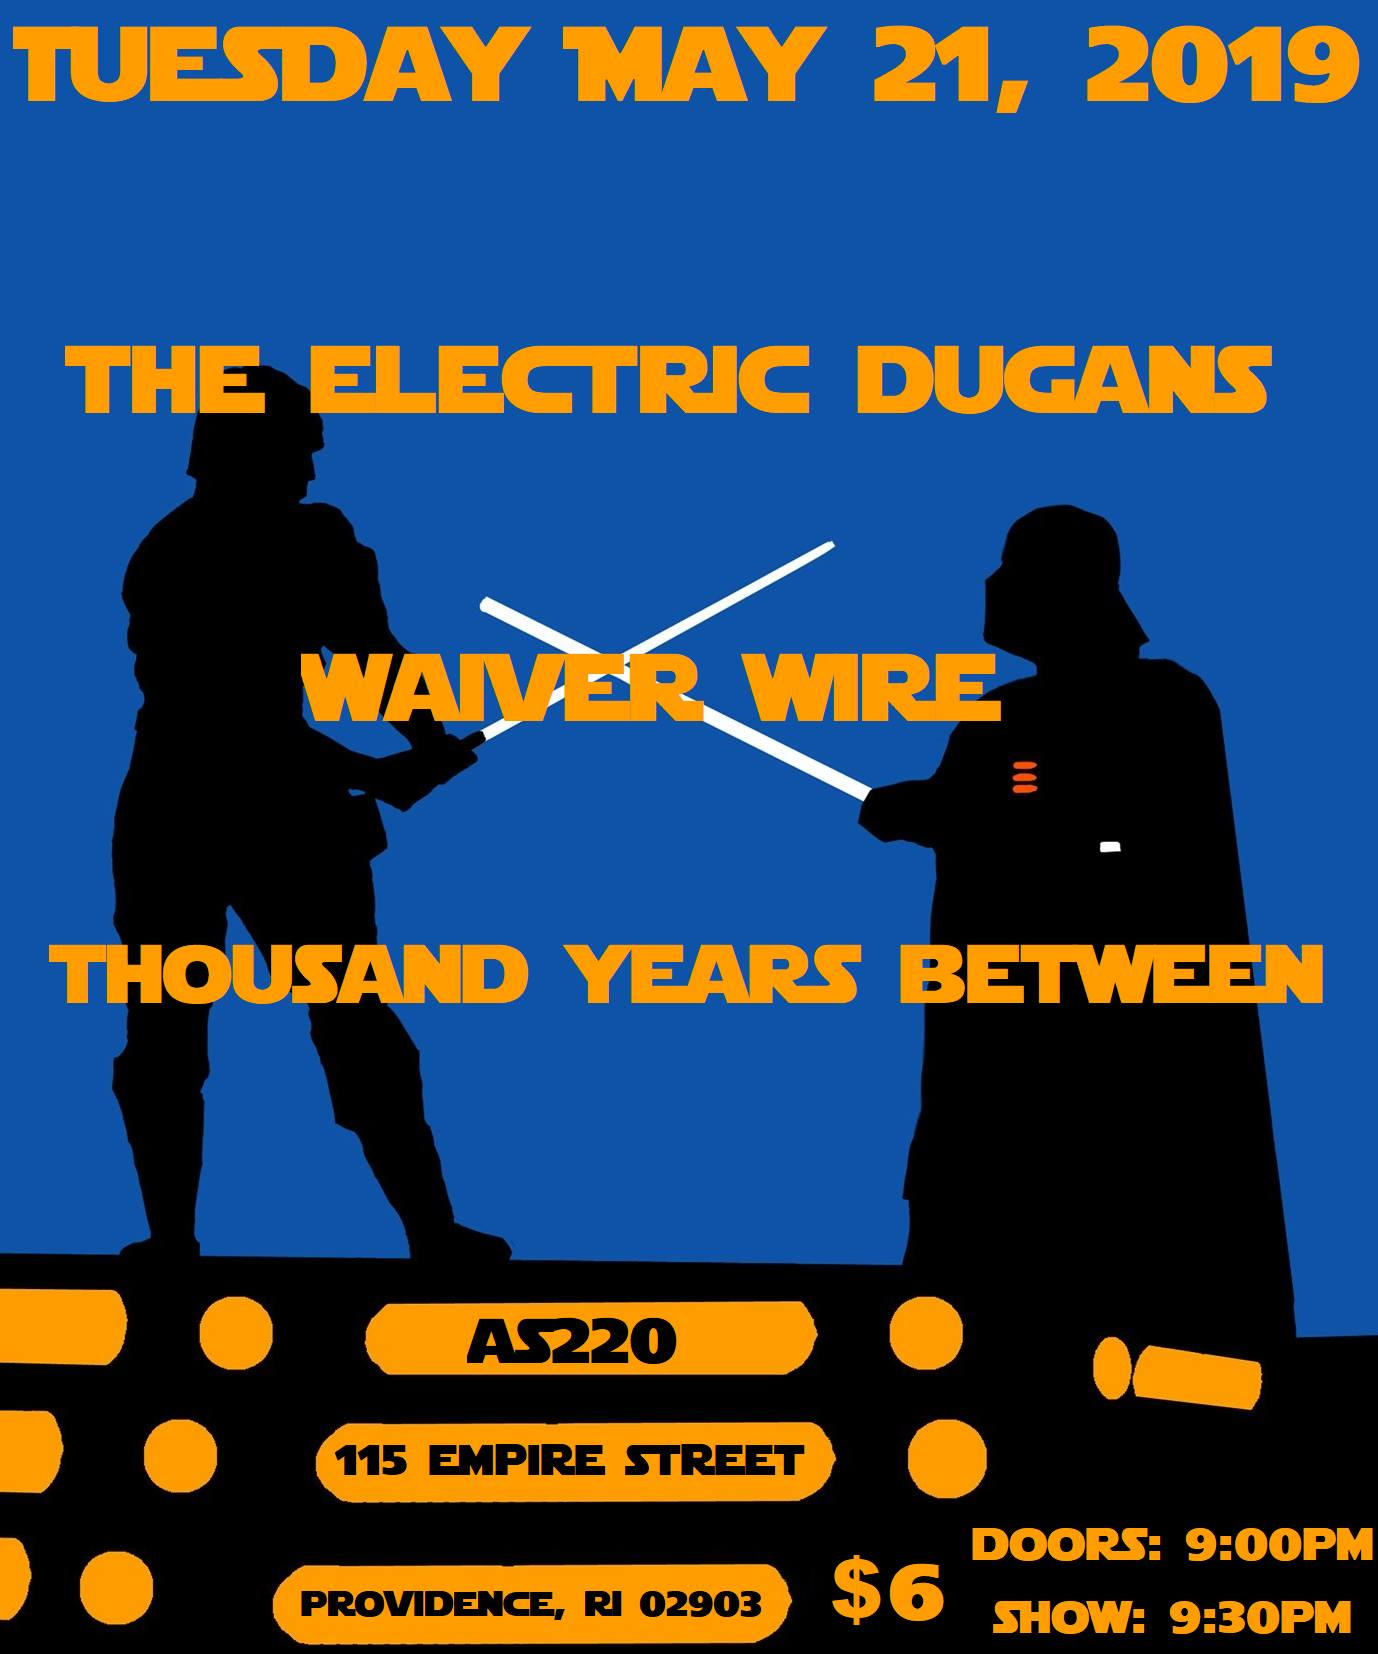 The Electric Dugans, Waiver Wire, and Thousand Years Between @ AS220 Main Stage